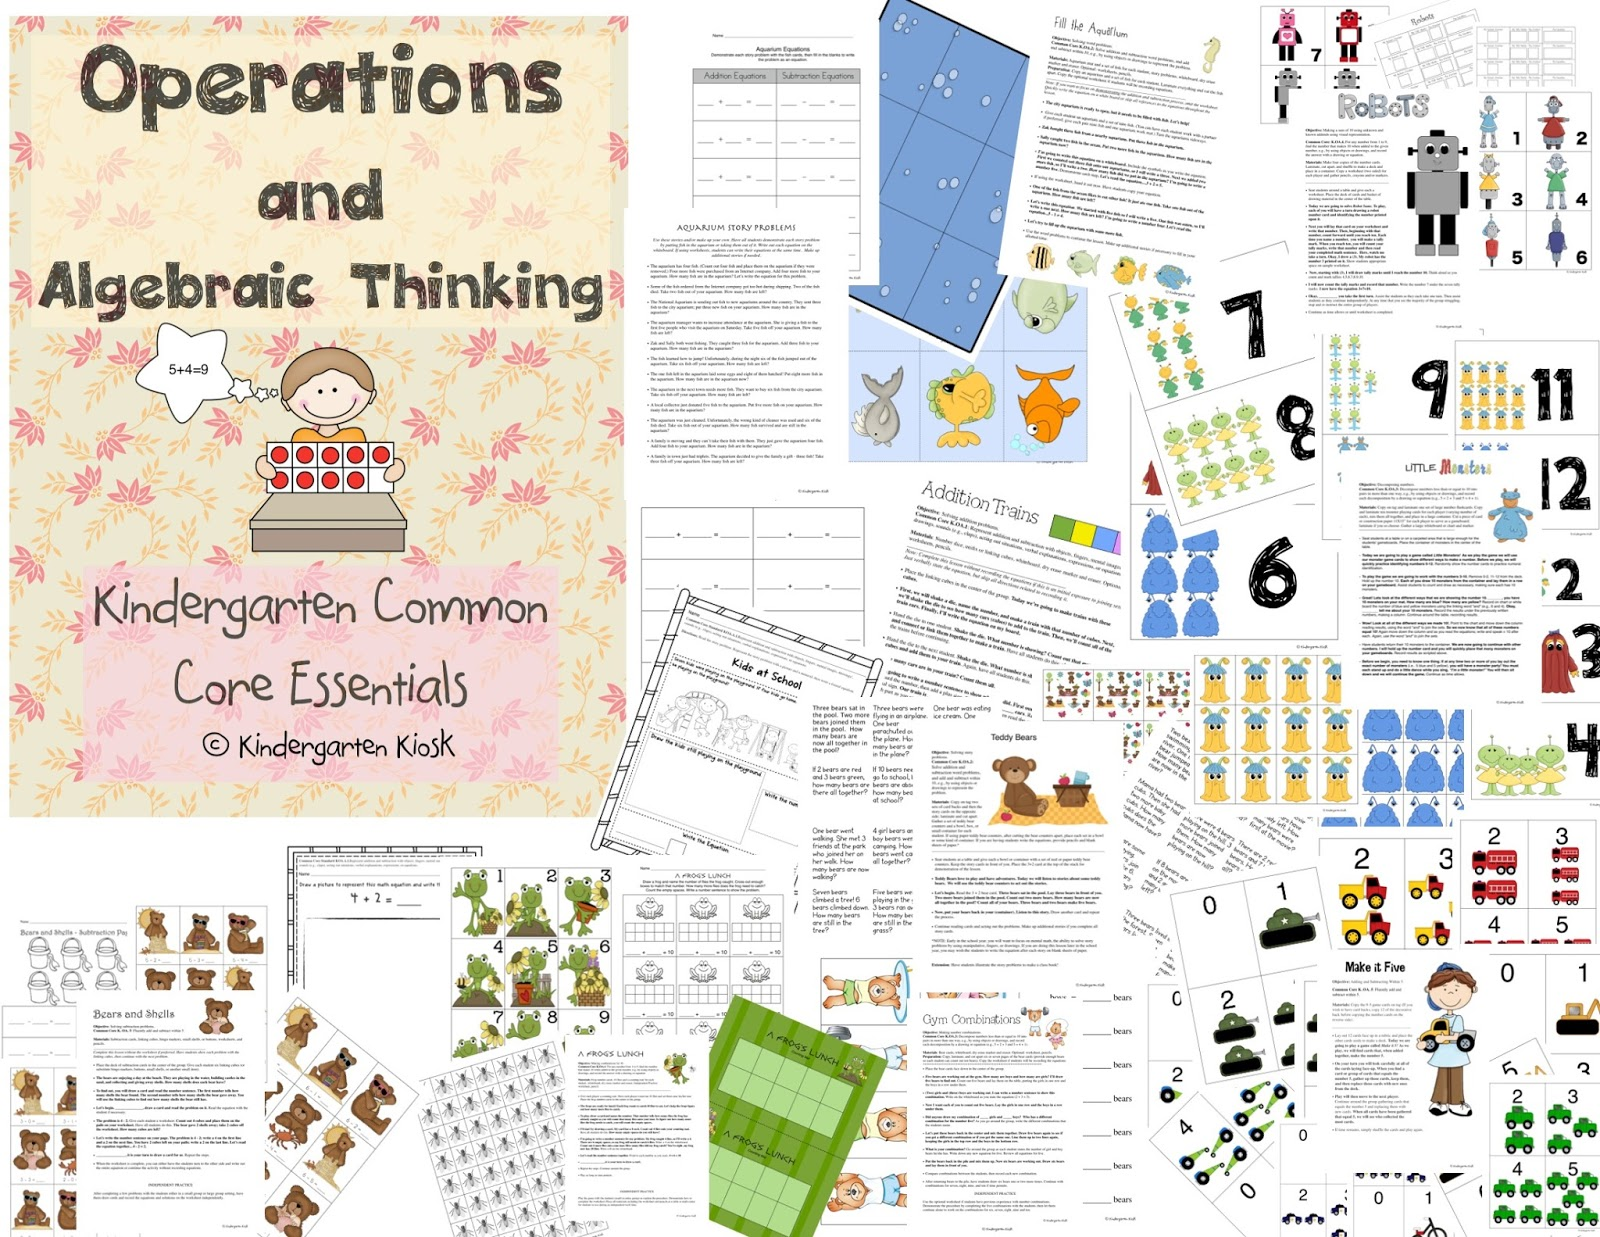 Kindergarten Kiosk Operations Amp Algebraic Thinking